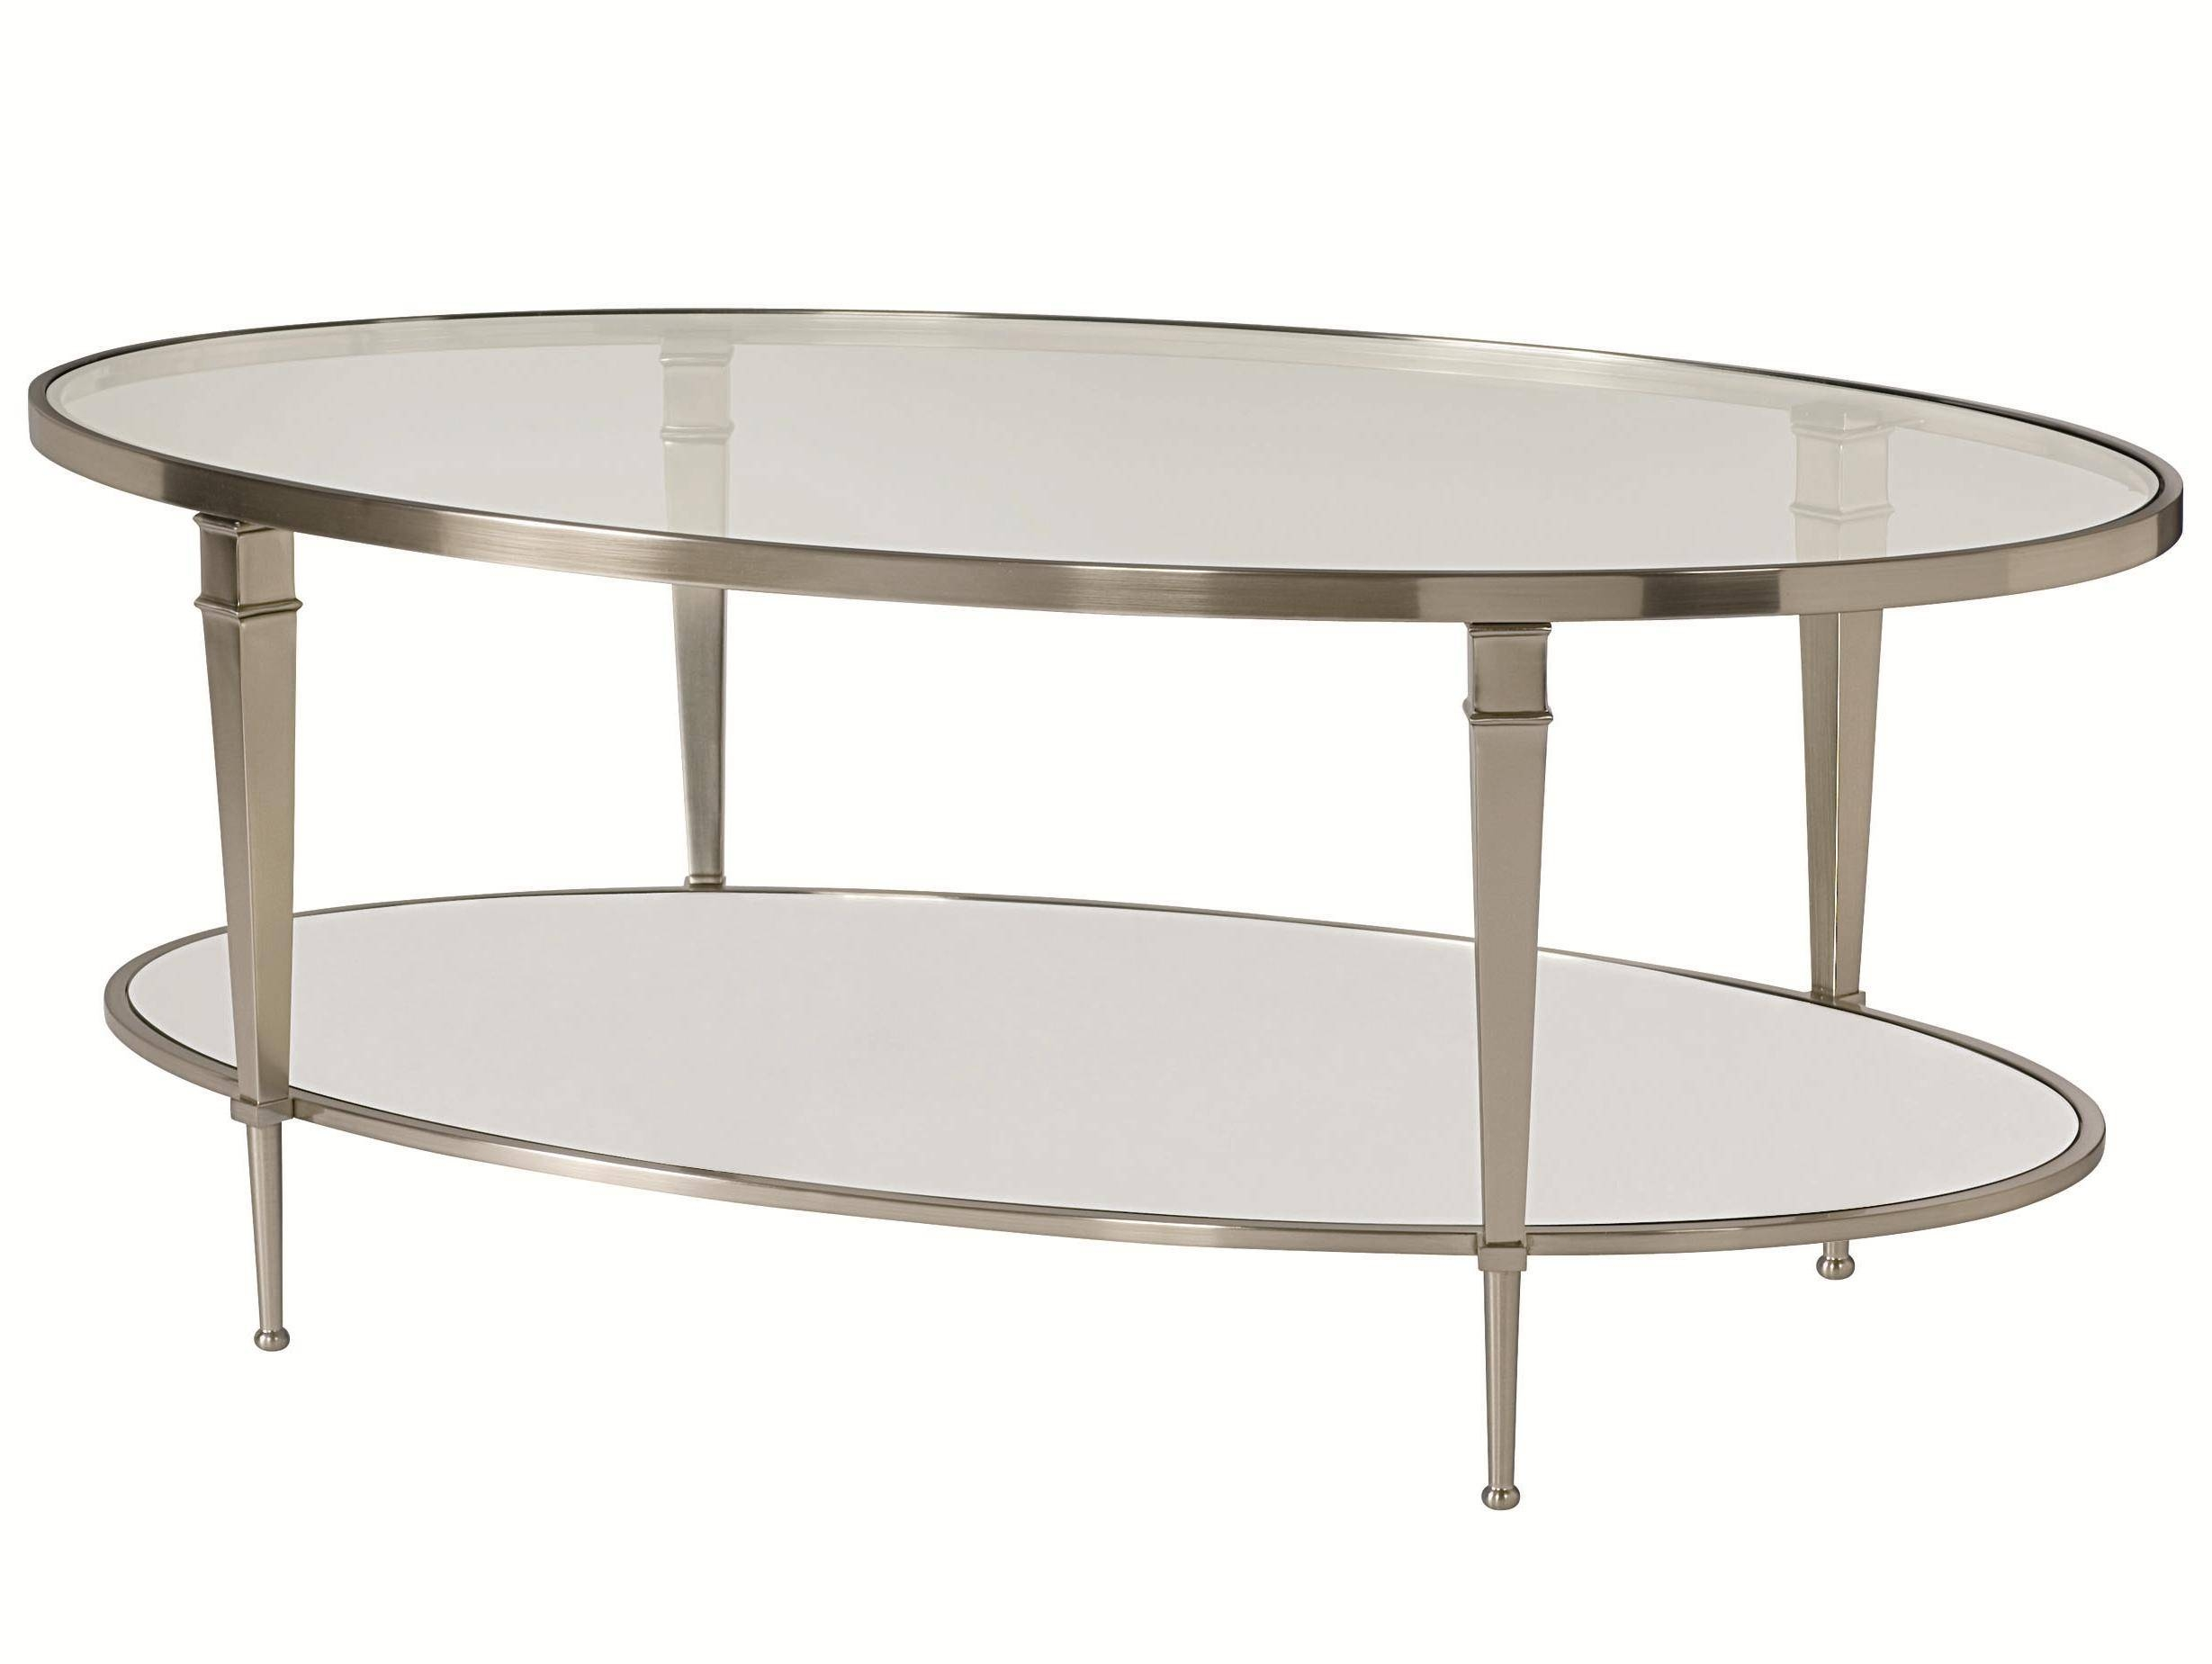 Oval Satin Nickel Antique Mirror Finish Cocktail Tablehammary in Vintage Mirror Coffee Tables (Image 21 of 30)